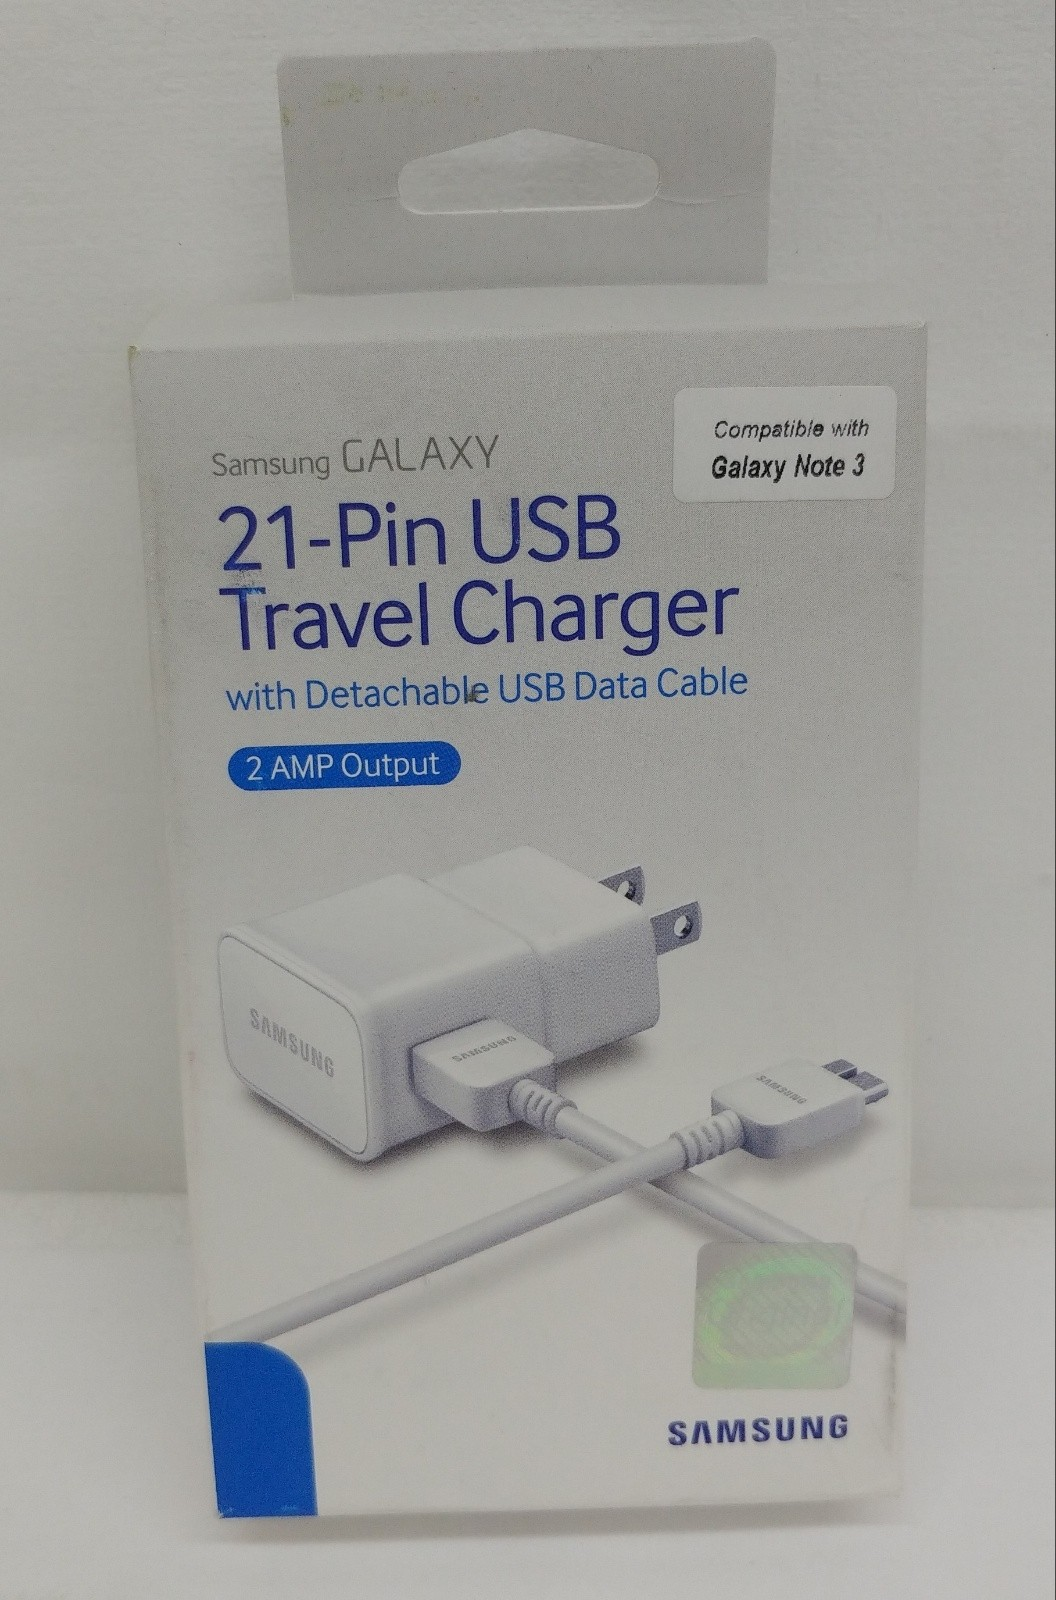 Samsung 2 Amp 21Pin USB Travel Charger for Galaxy Note 3, S5